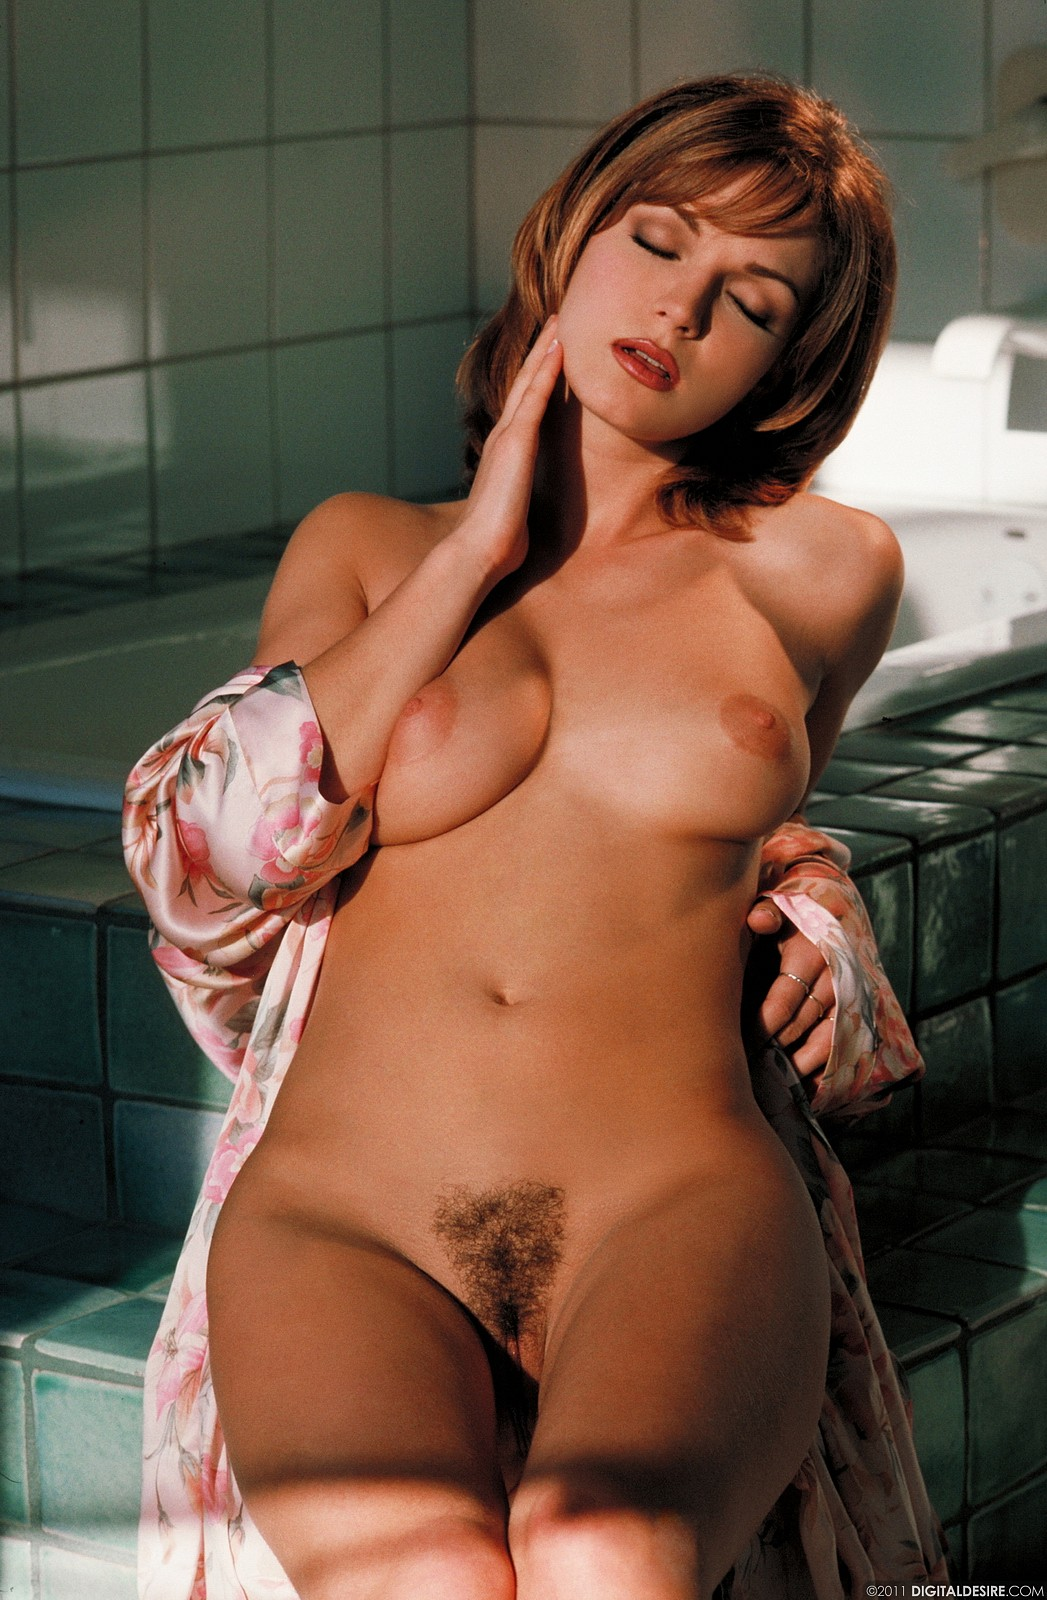 Real housewives anal nude